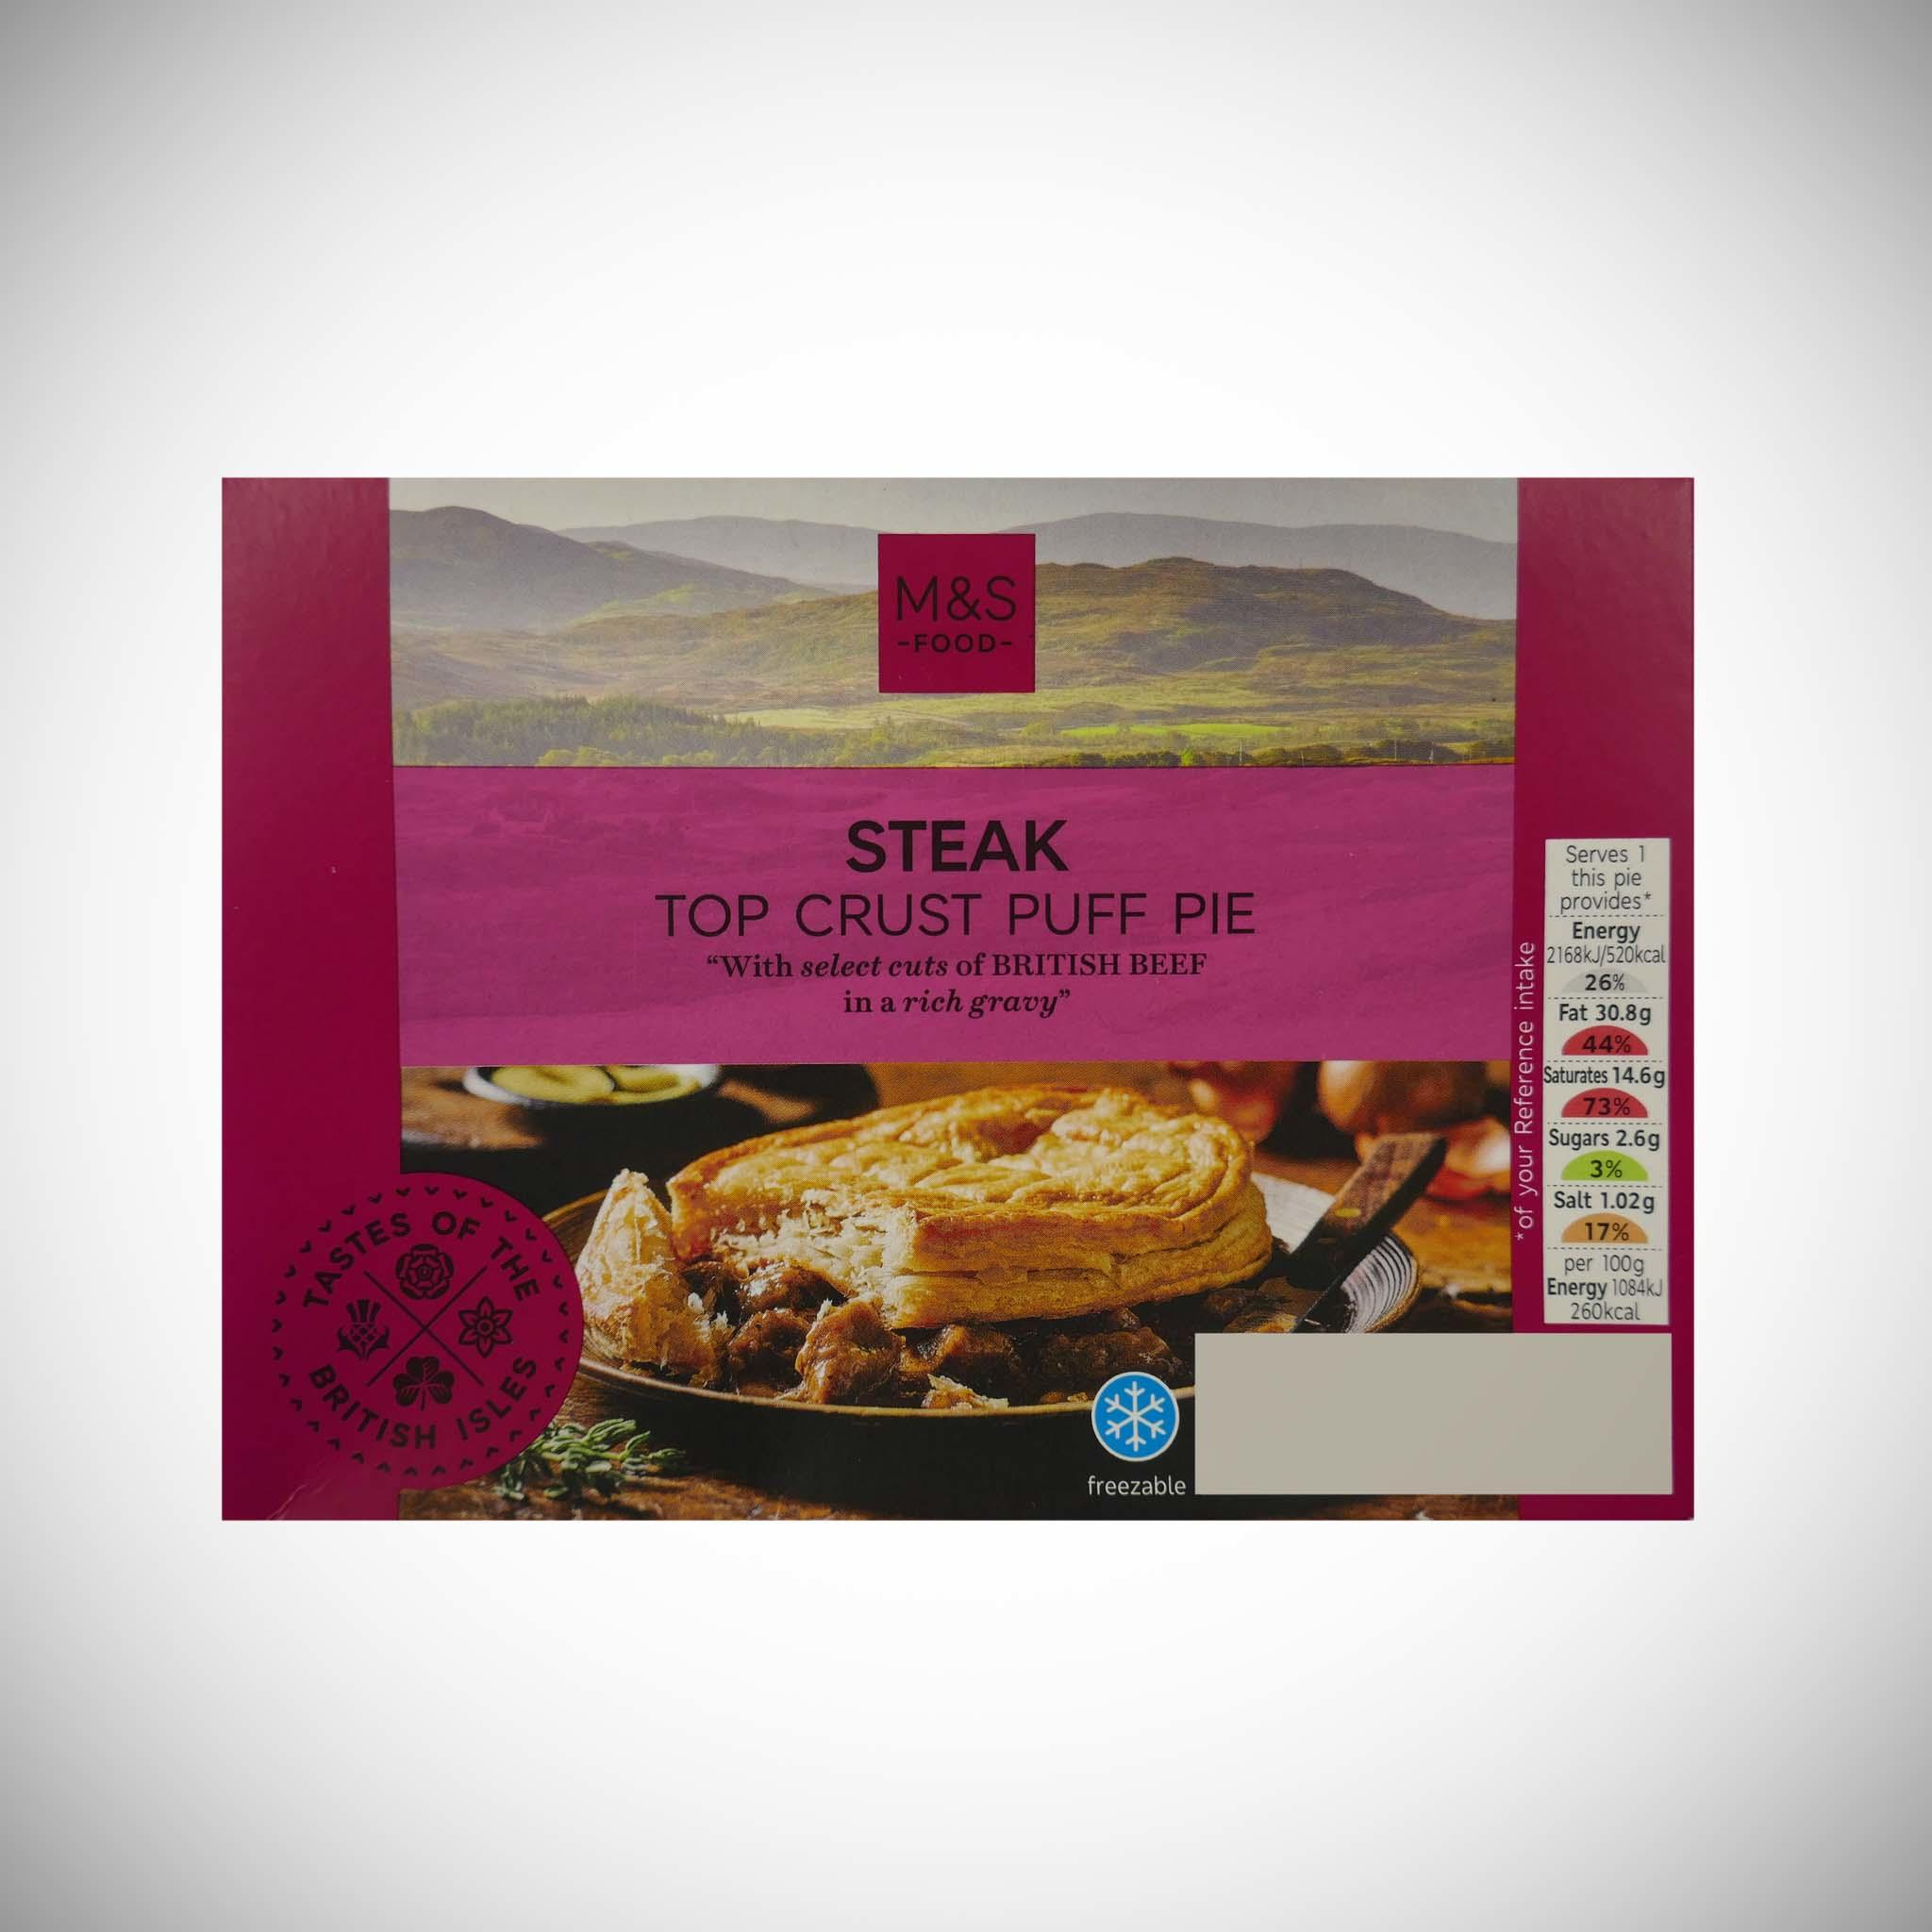 Steak Pie with a Top Crust Puff Pastry 200g